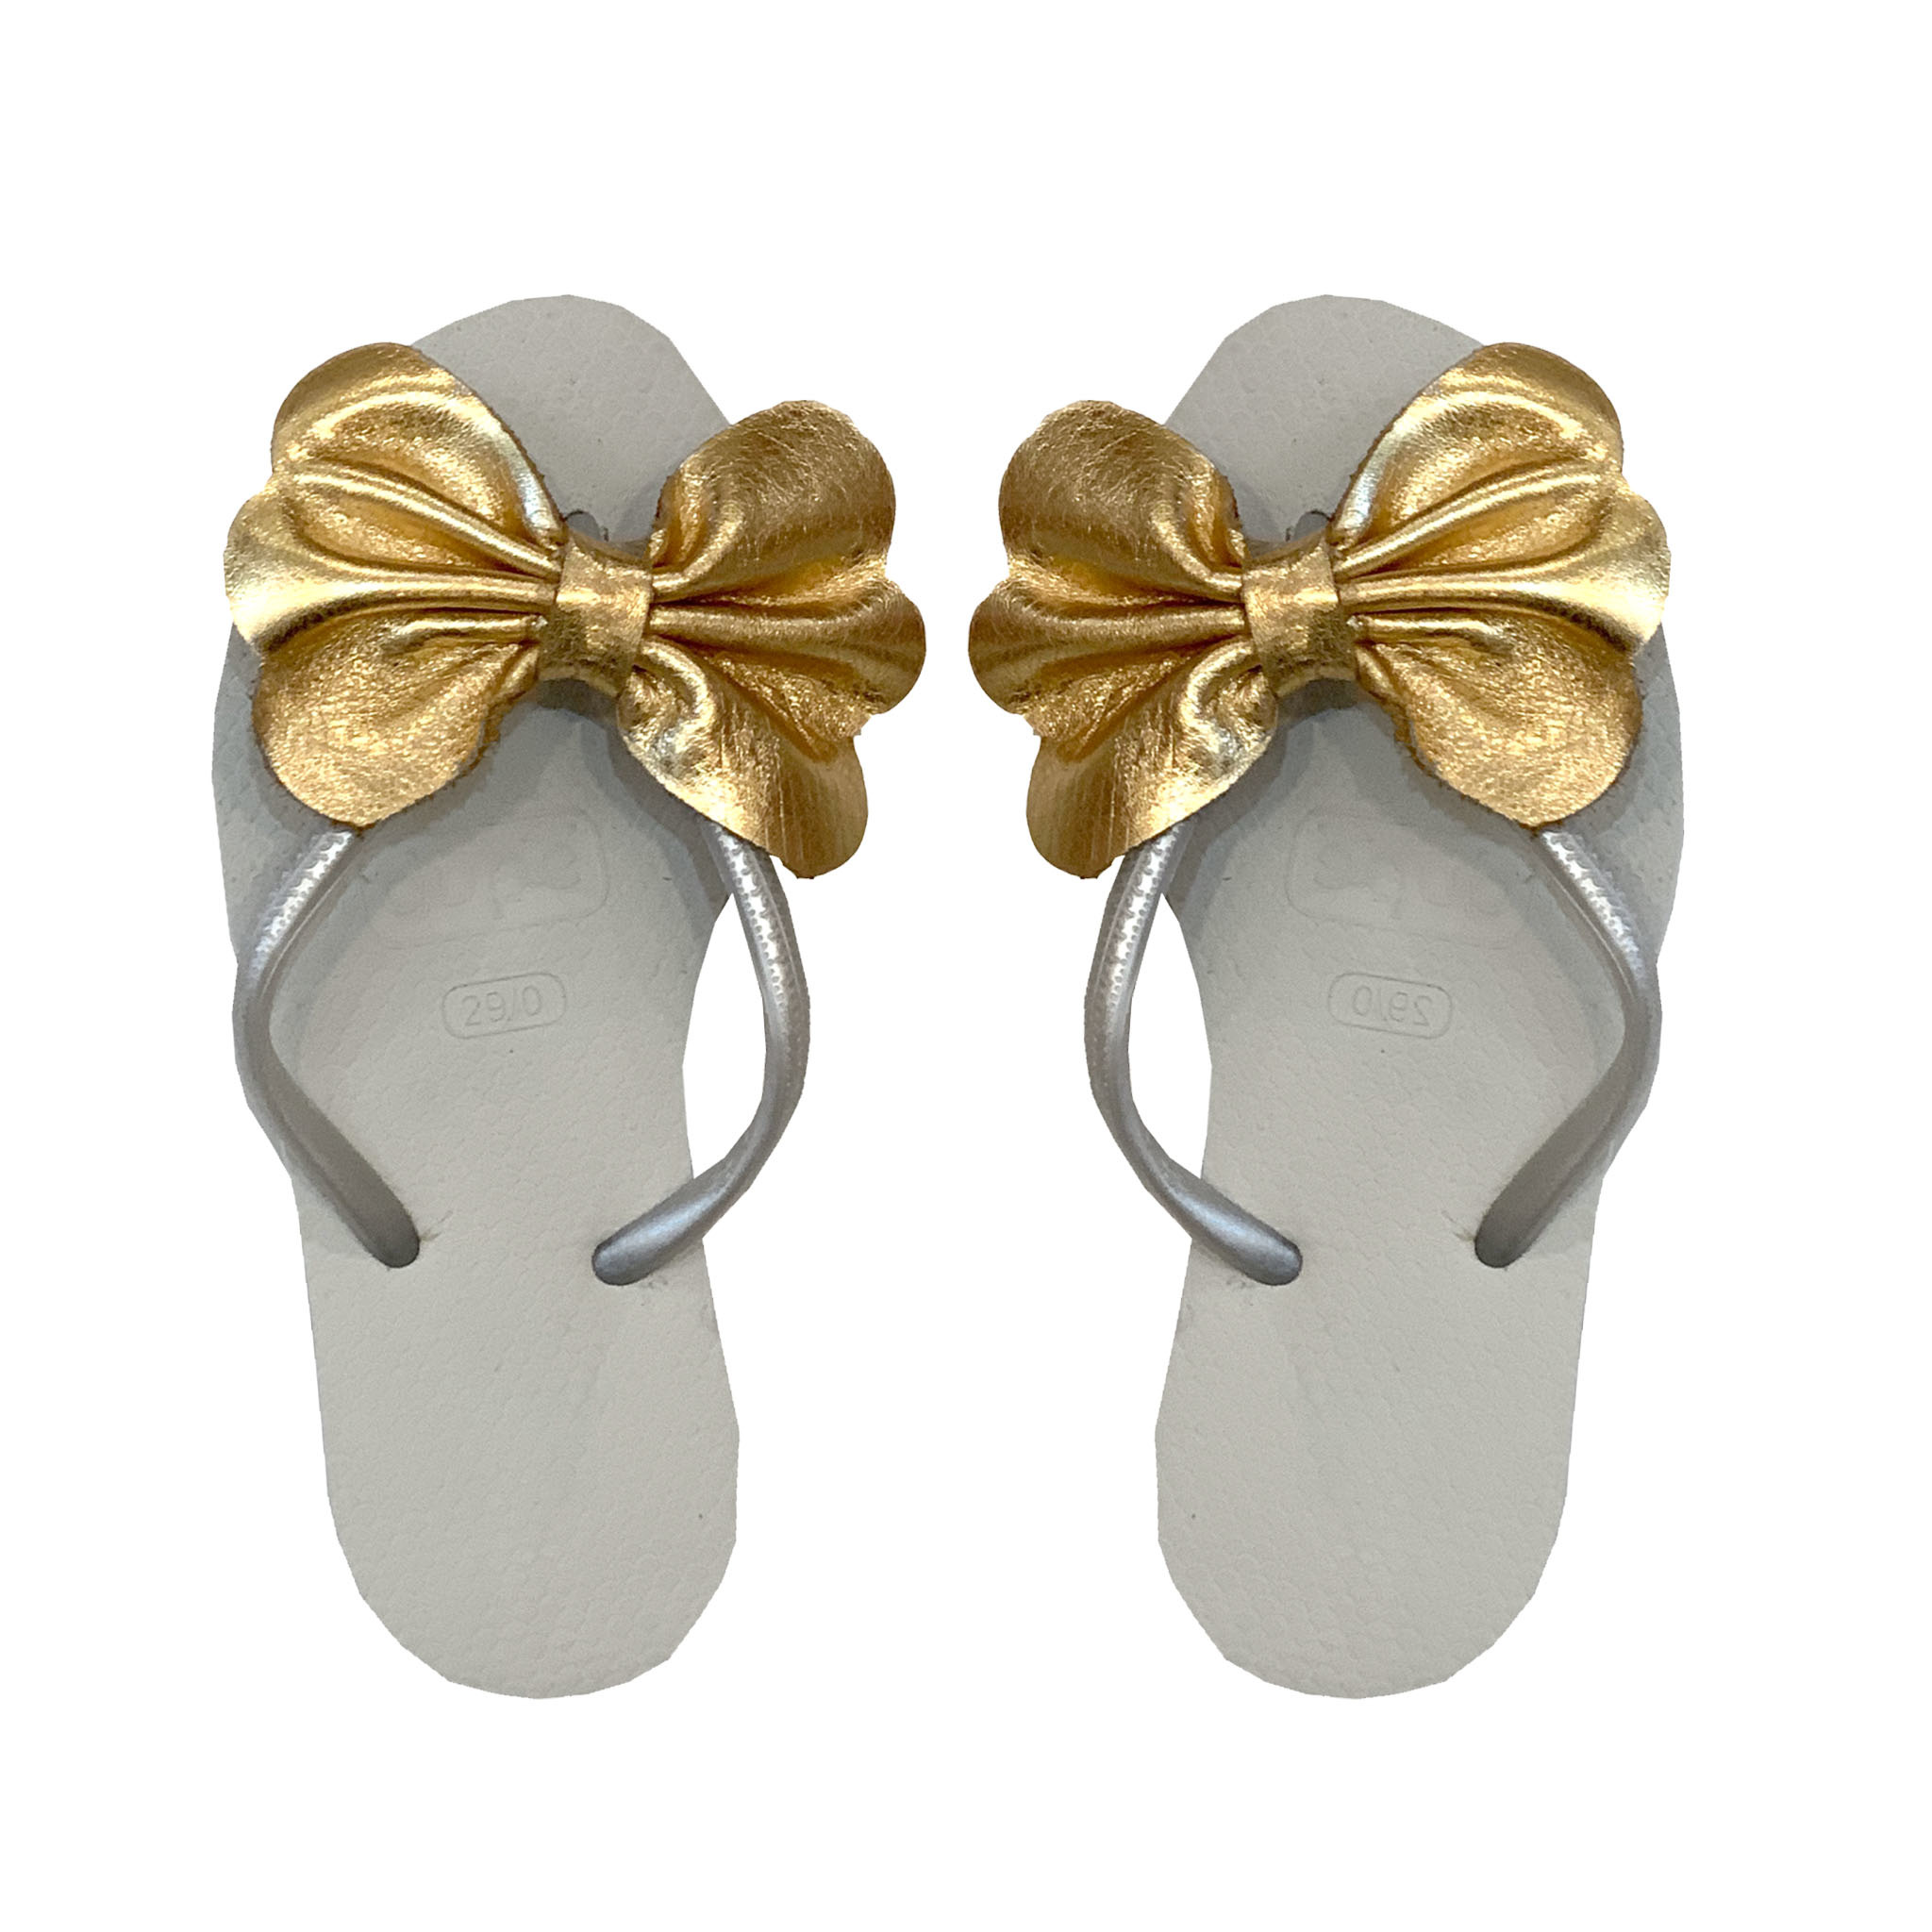 Planet Sea Gold Leather Bow Flip Flops